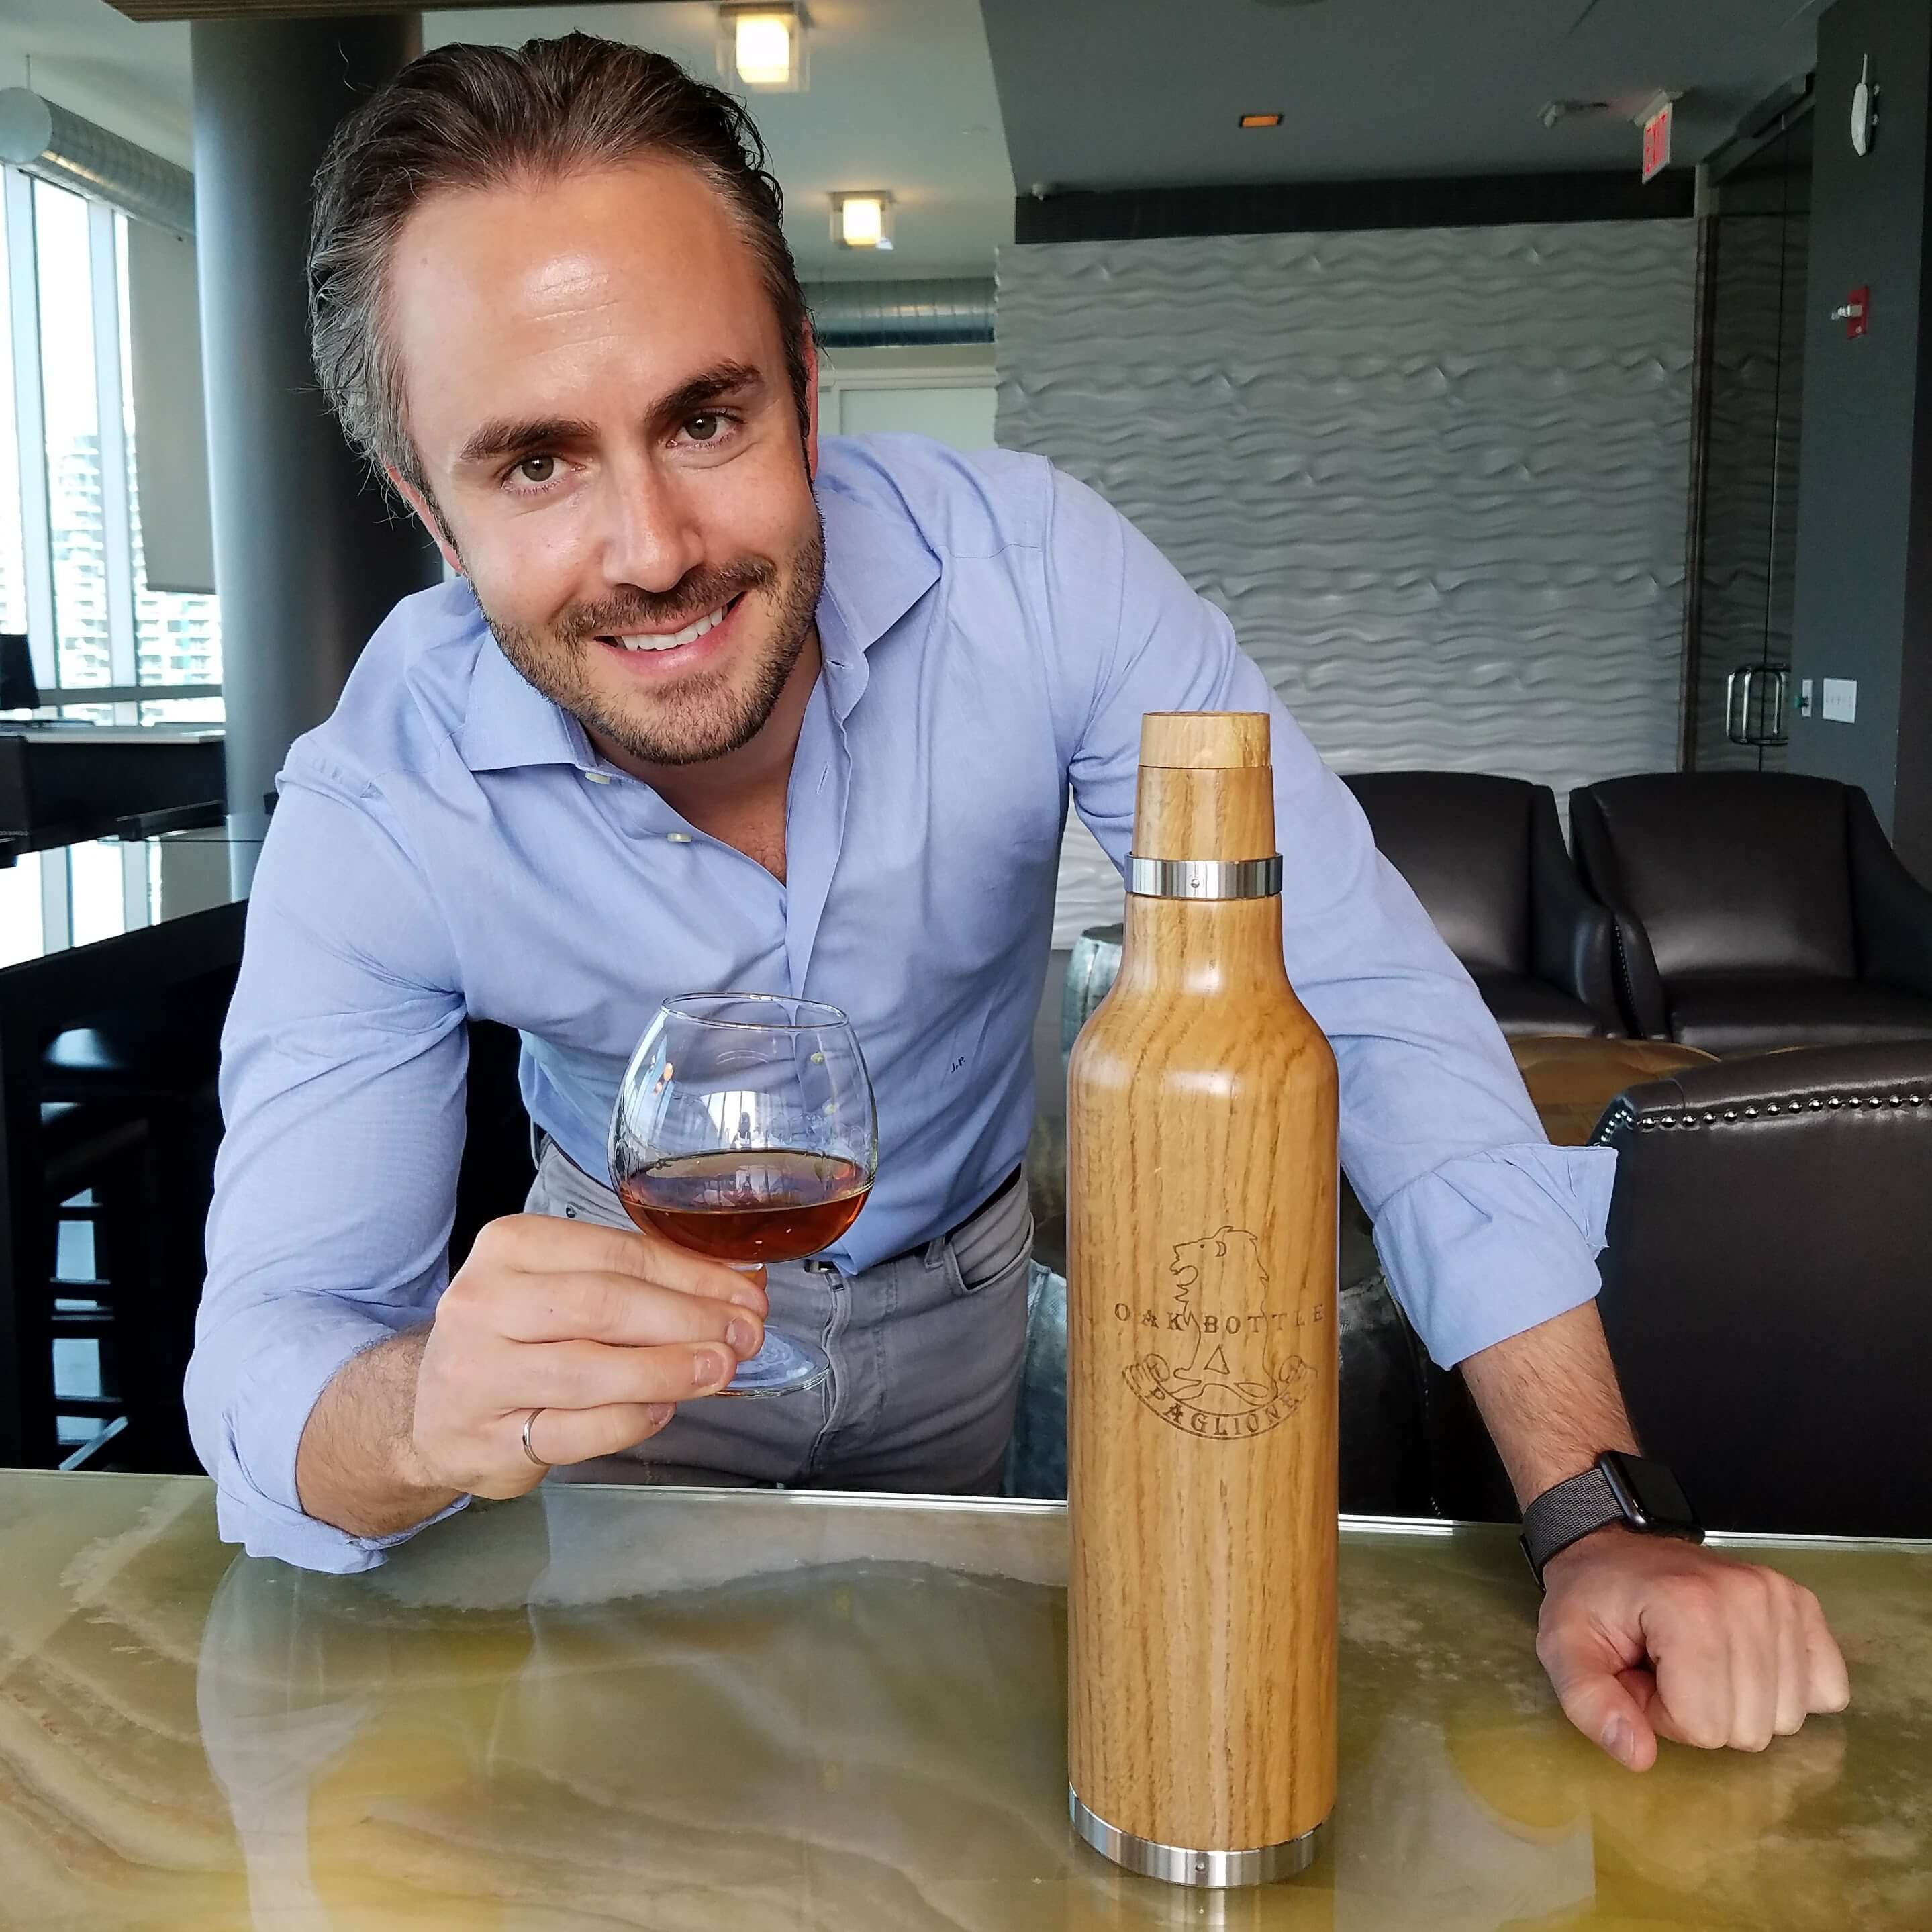 Joe Paglione and his invention, the oak bottle